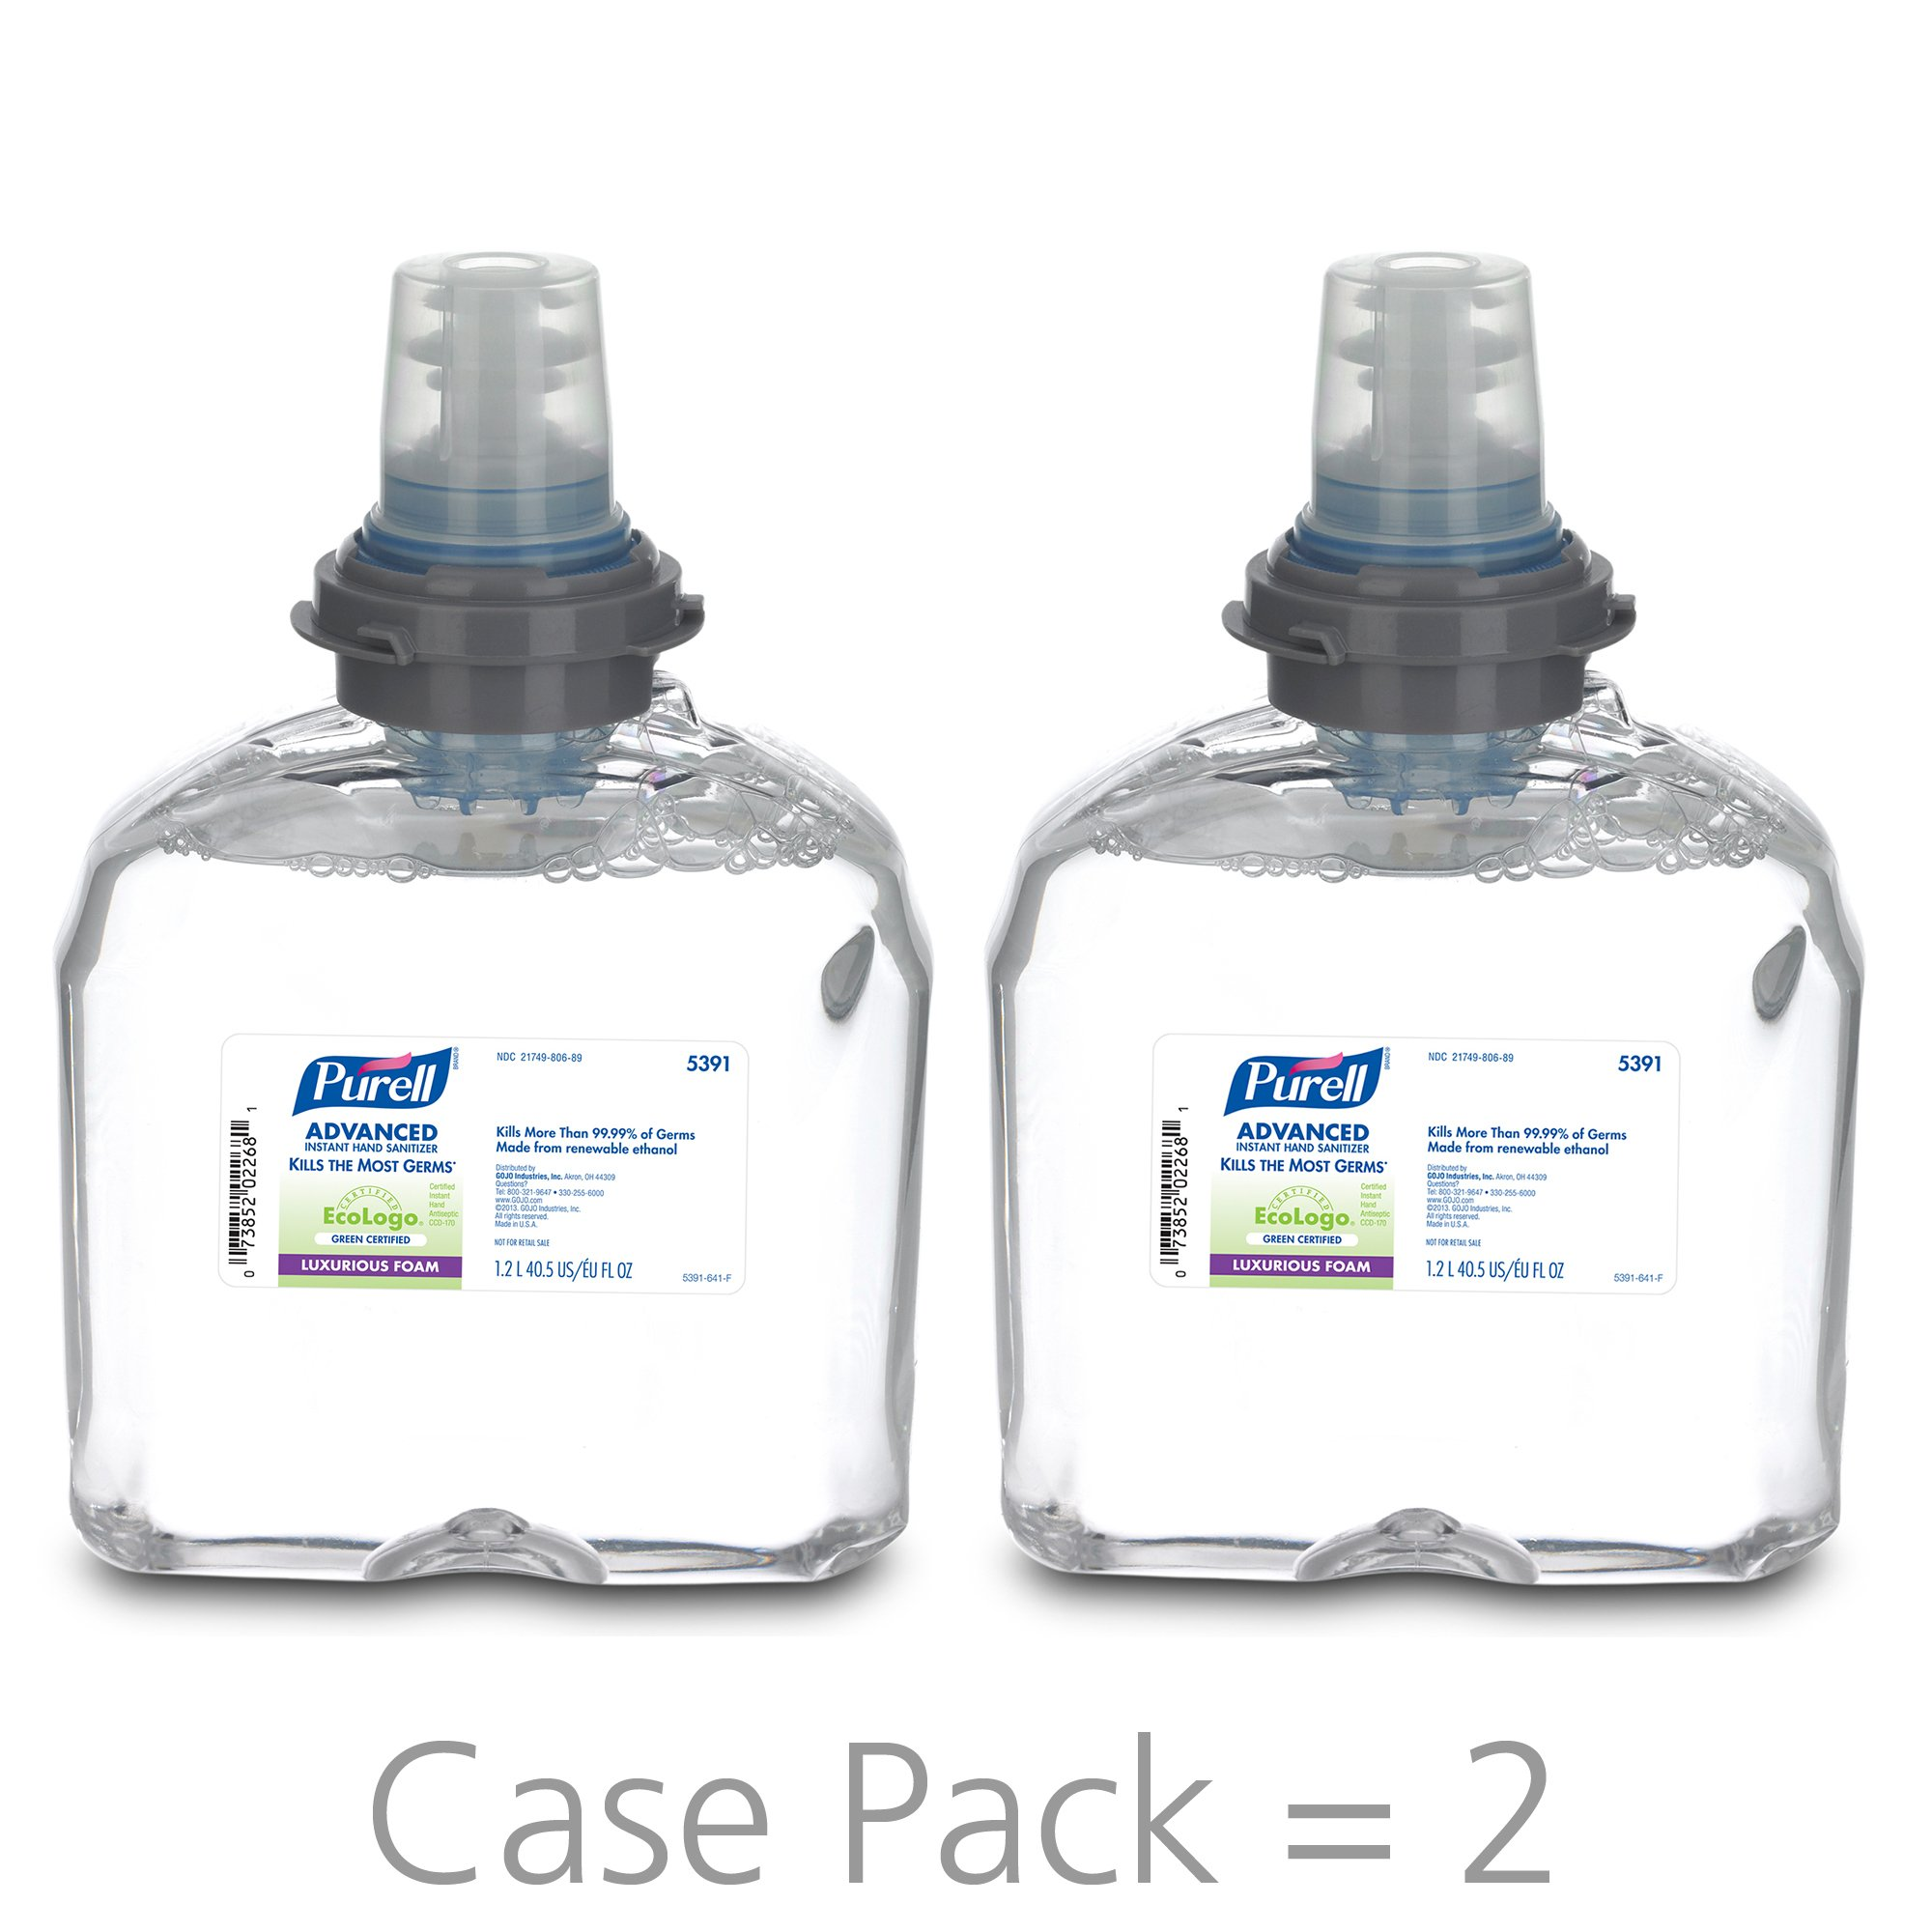 PURELL Advanced Green Certified Instant Hand Sanitizer Foam, 1200 mL Hand Sanitizer Foam Refill for PURELL TFX Touch-Free Dispenser (Pack of 2) - 5391-02 by Purell